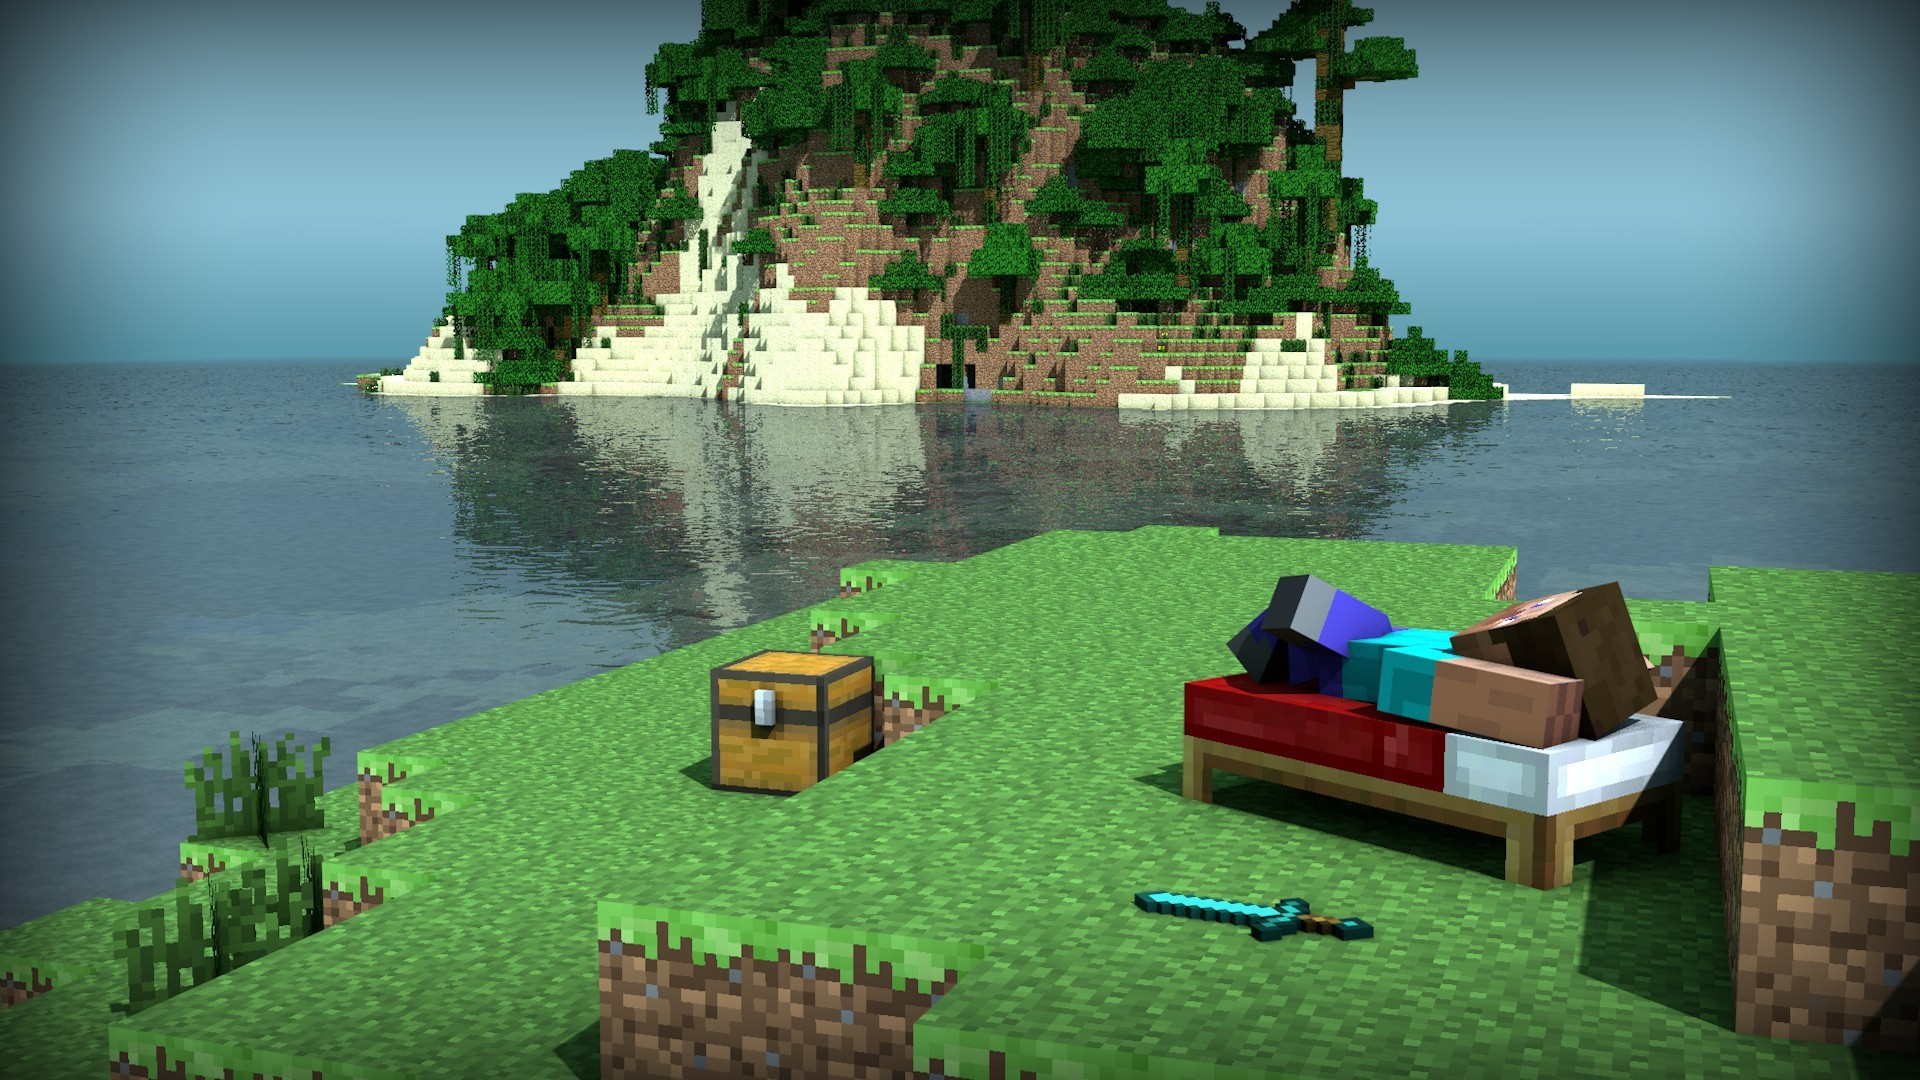 game Minecraft wallpapers and images   wallpapers pictures photos 1920x1080